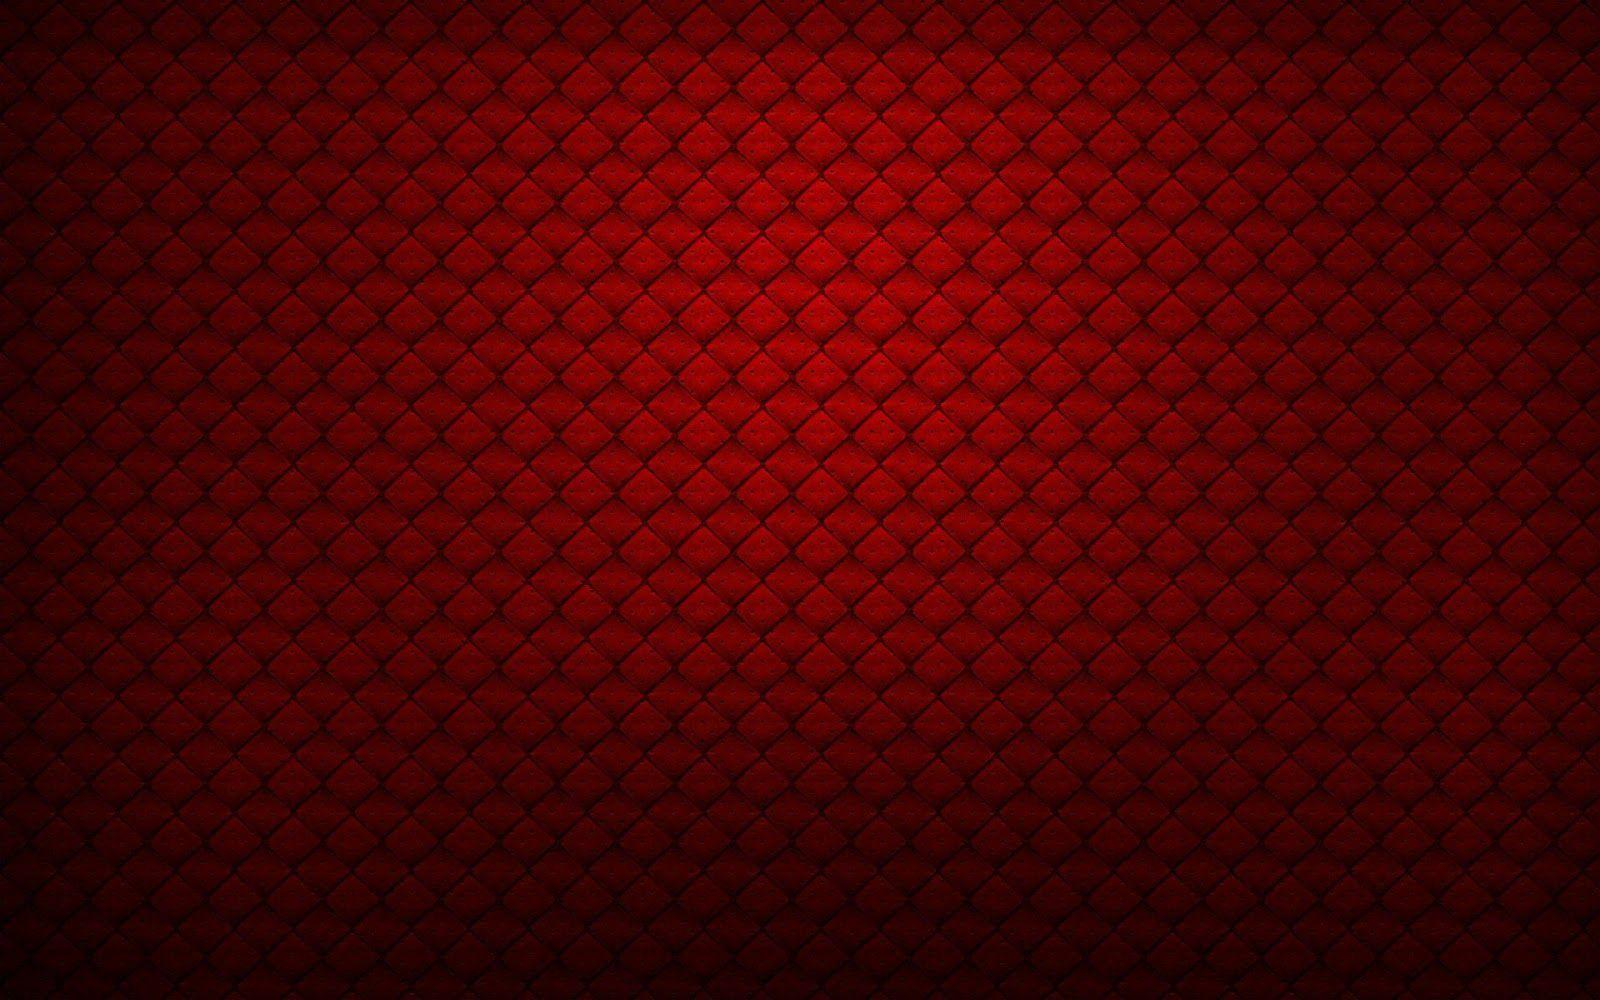 Red pictures